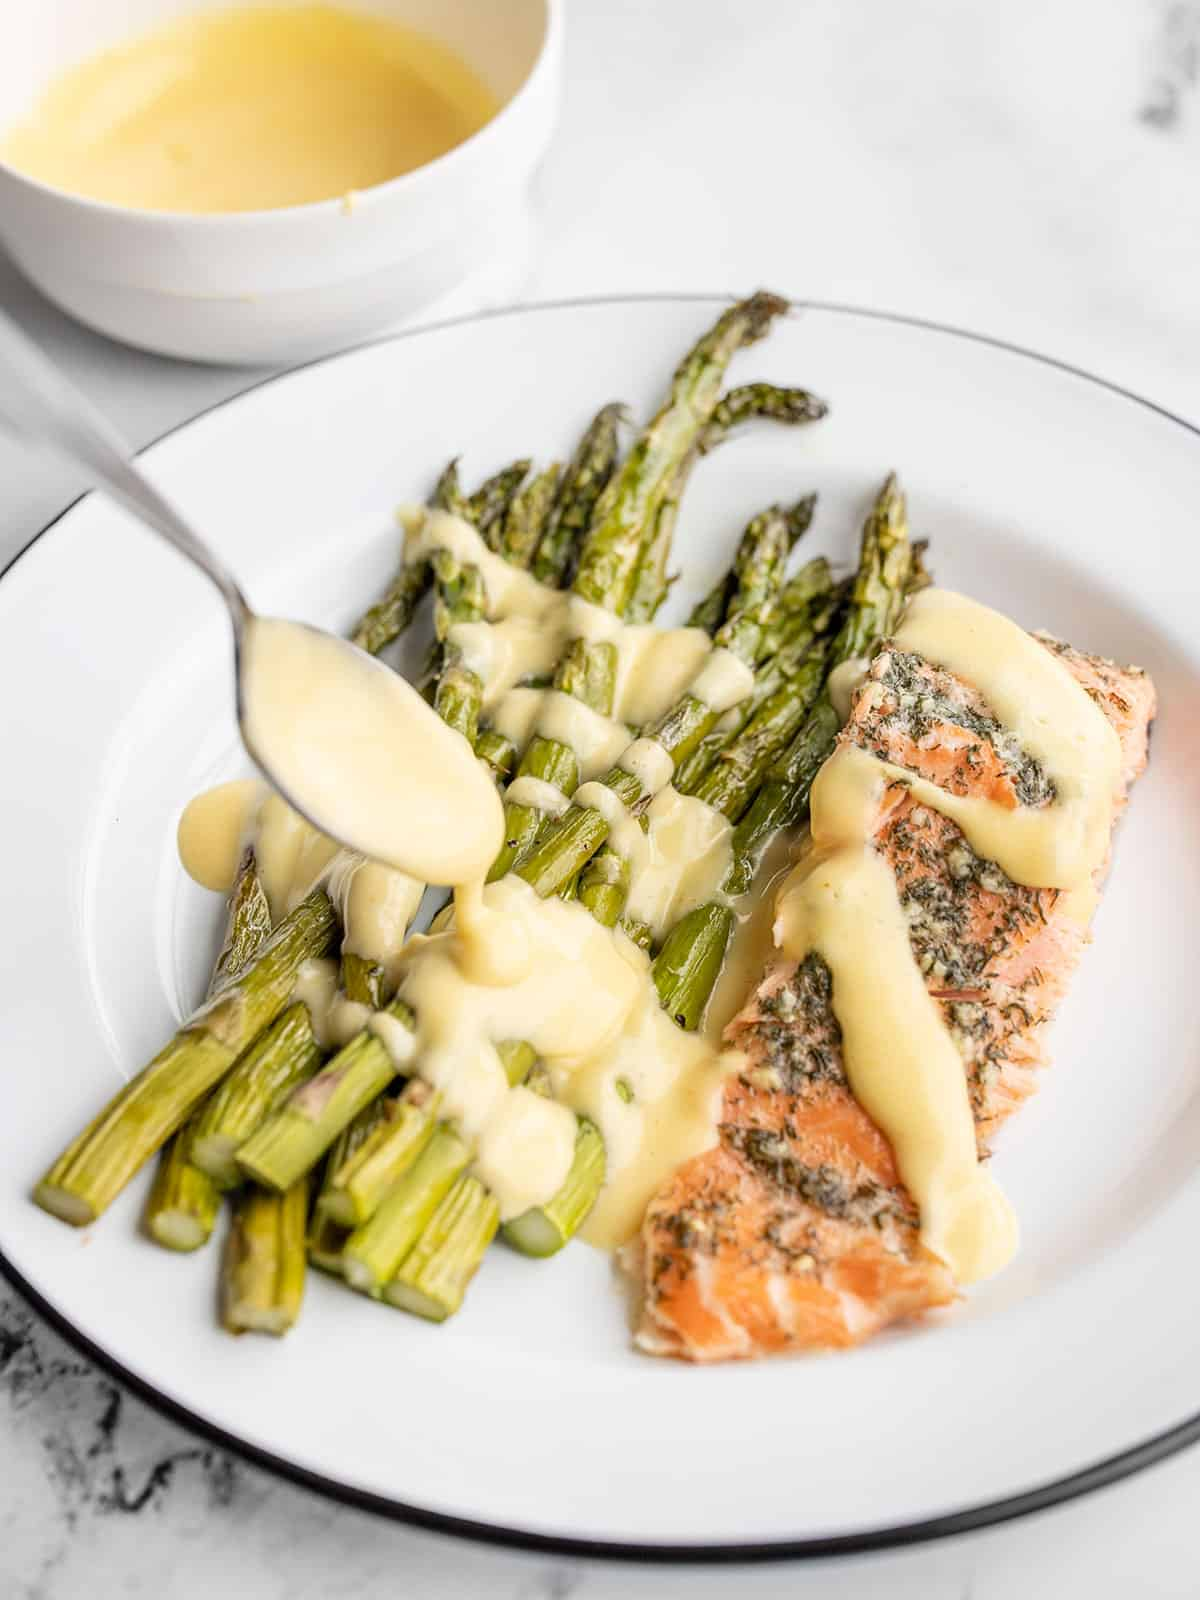 Hollandaise sauce being drizzled over asparagus and salmon